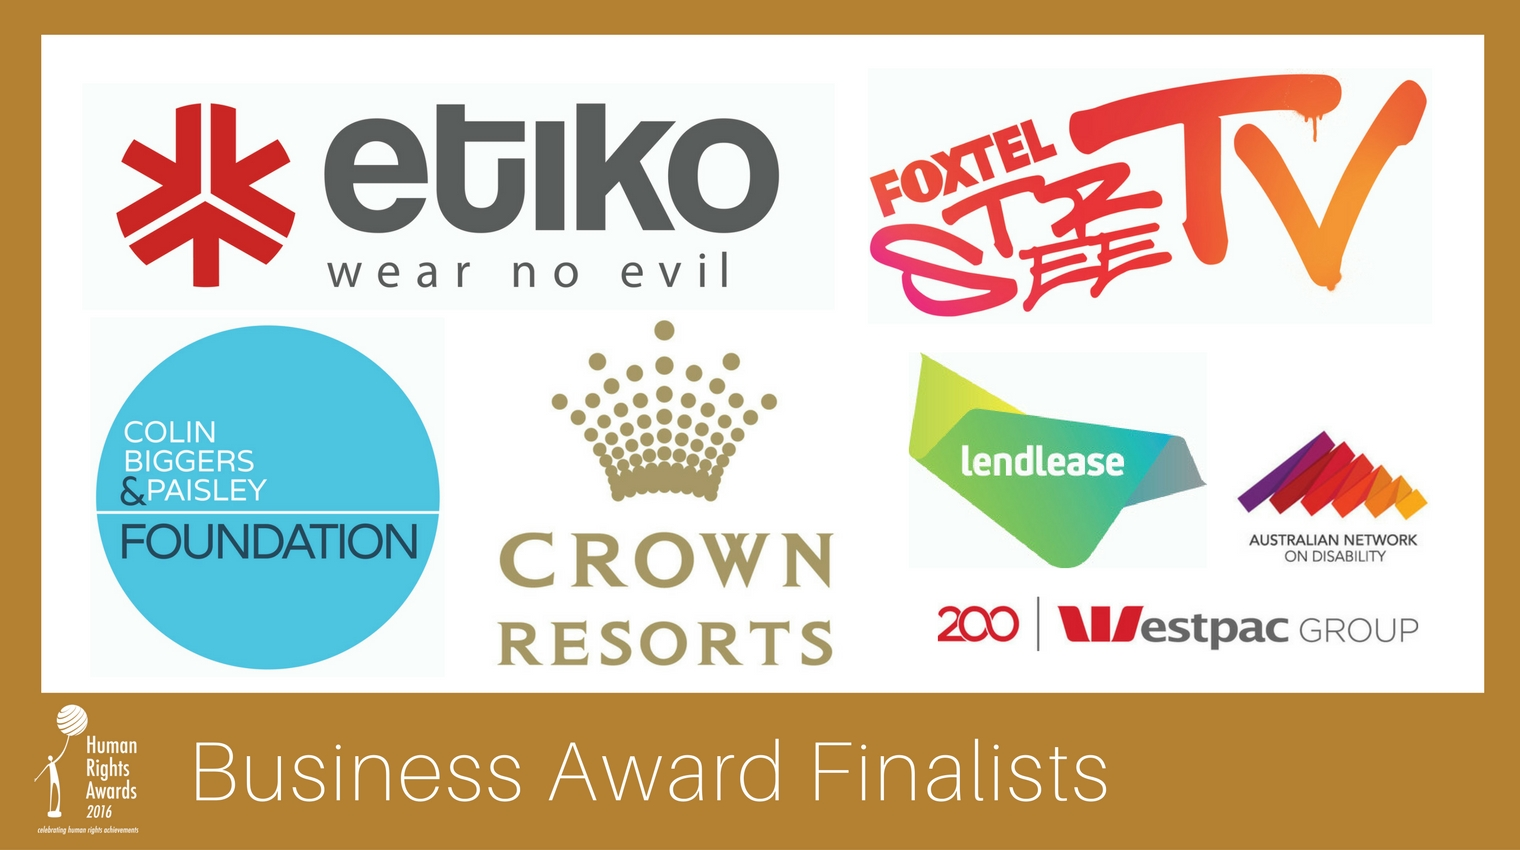 Composite of Business Award finalist logos 2016